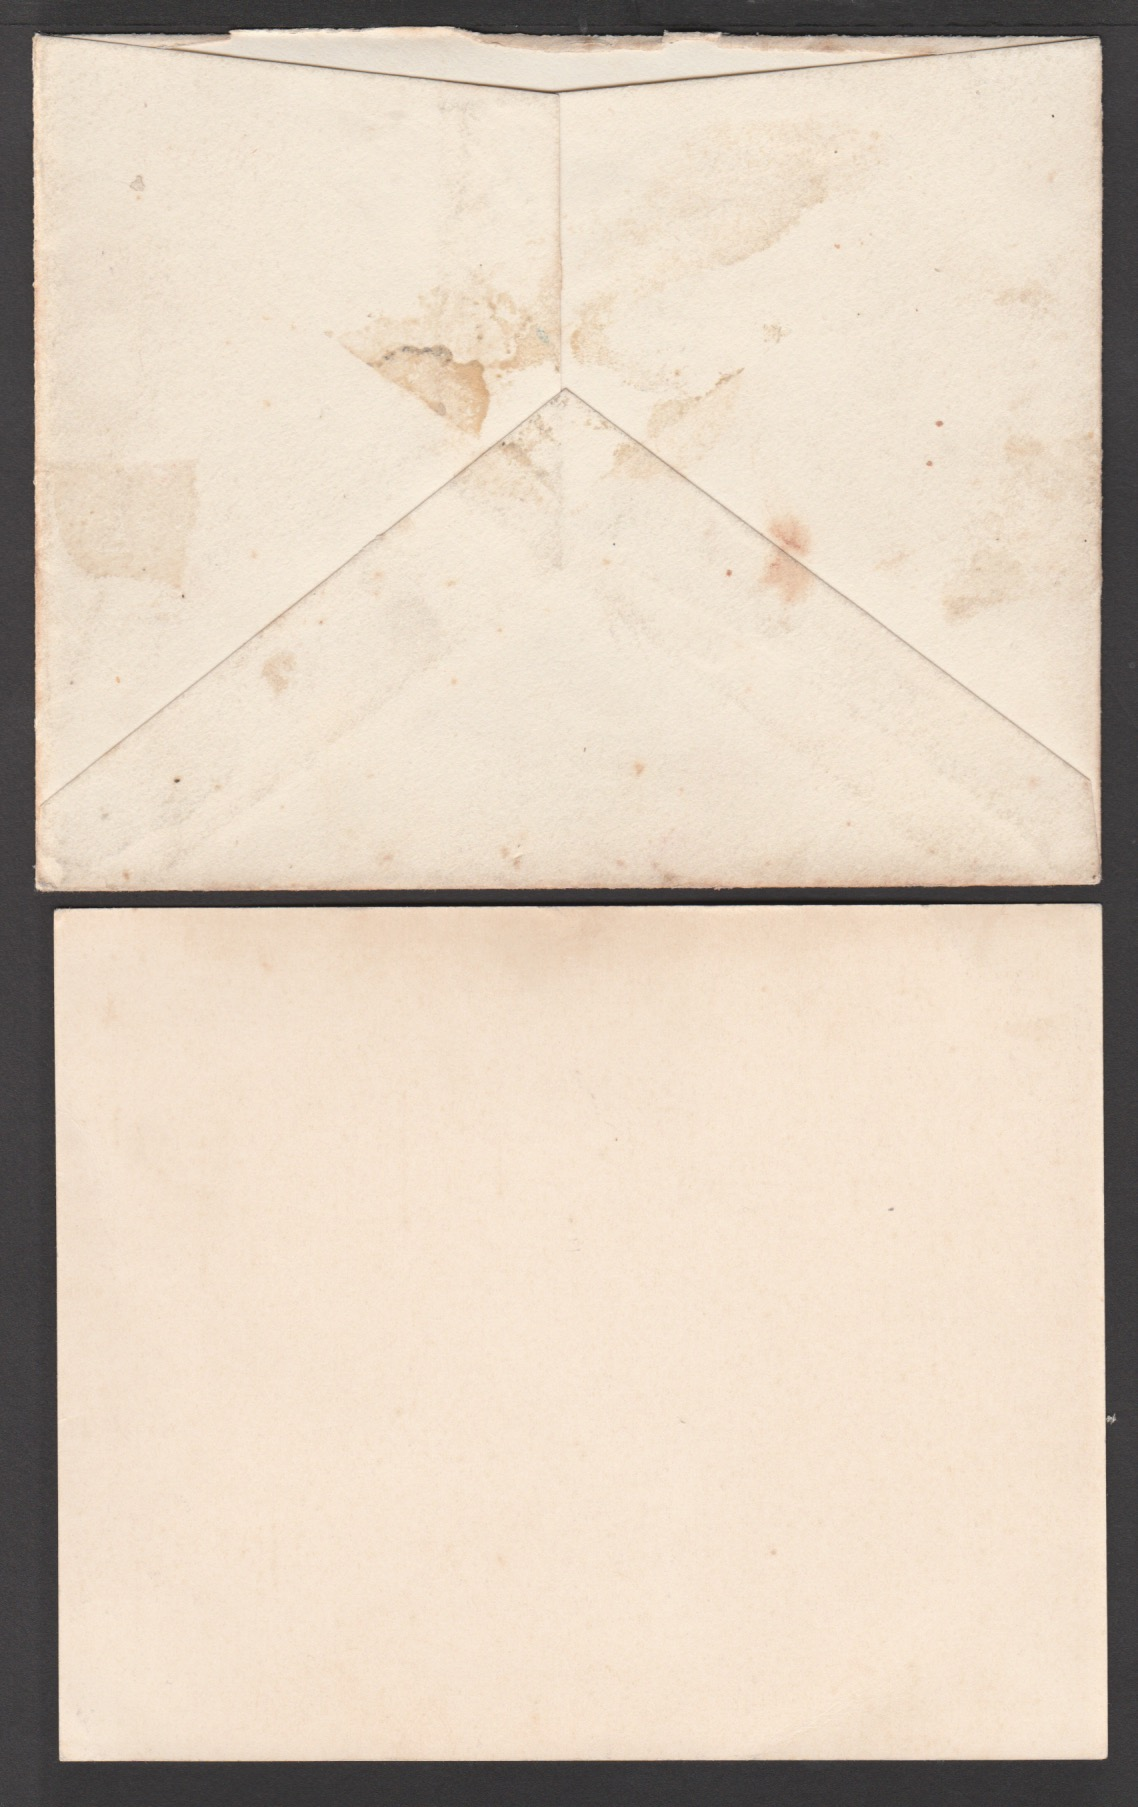 G.B. - Pictorials 1900 - Image 2 of 2